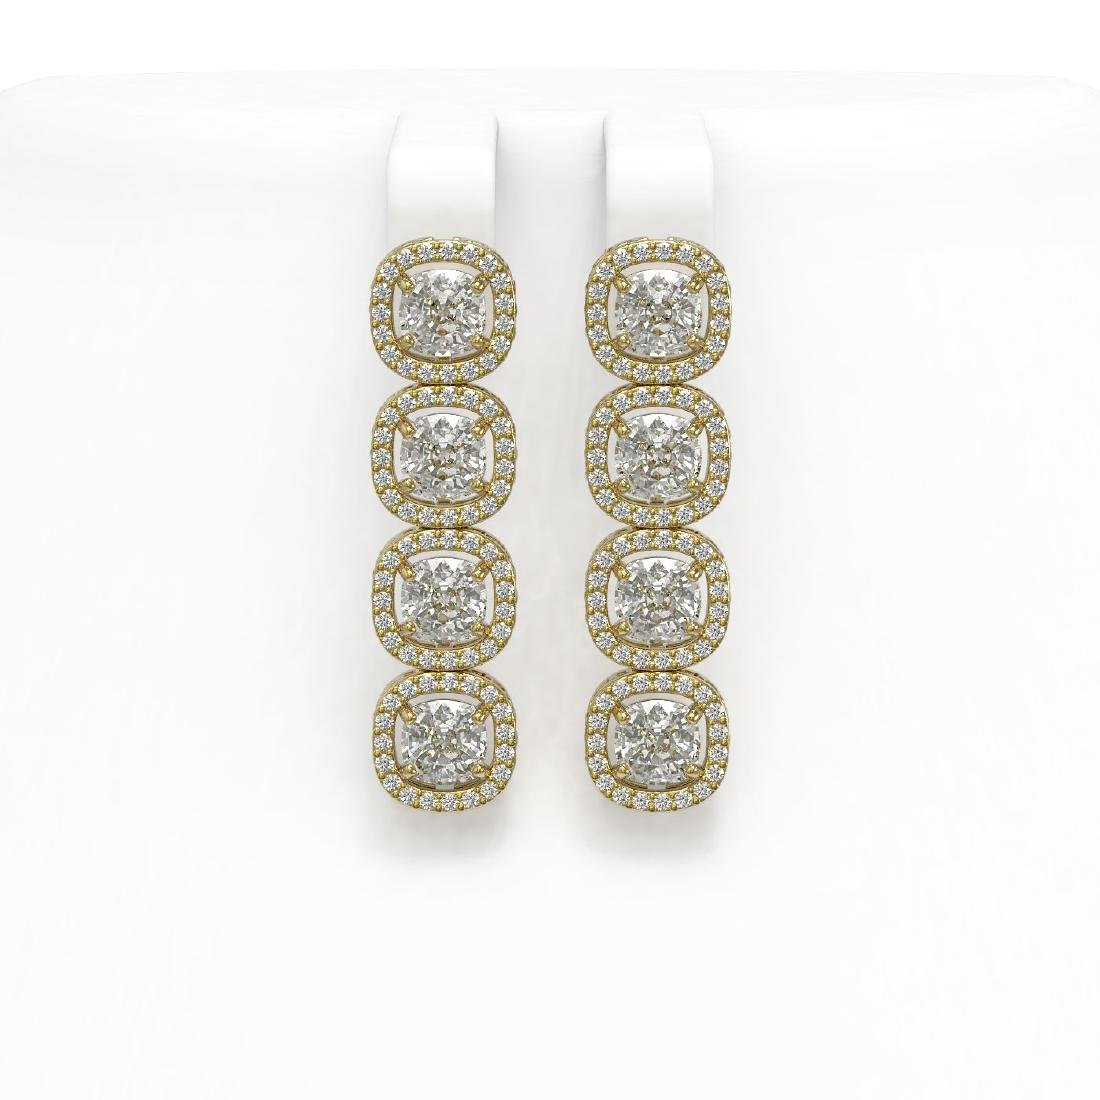 6.01 CTW Cushion Diamond Designer Earrings 18K Yellow